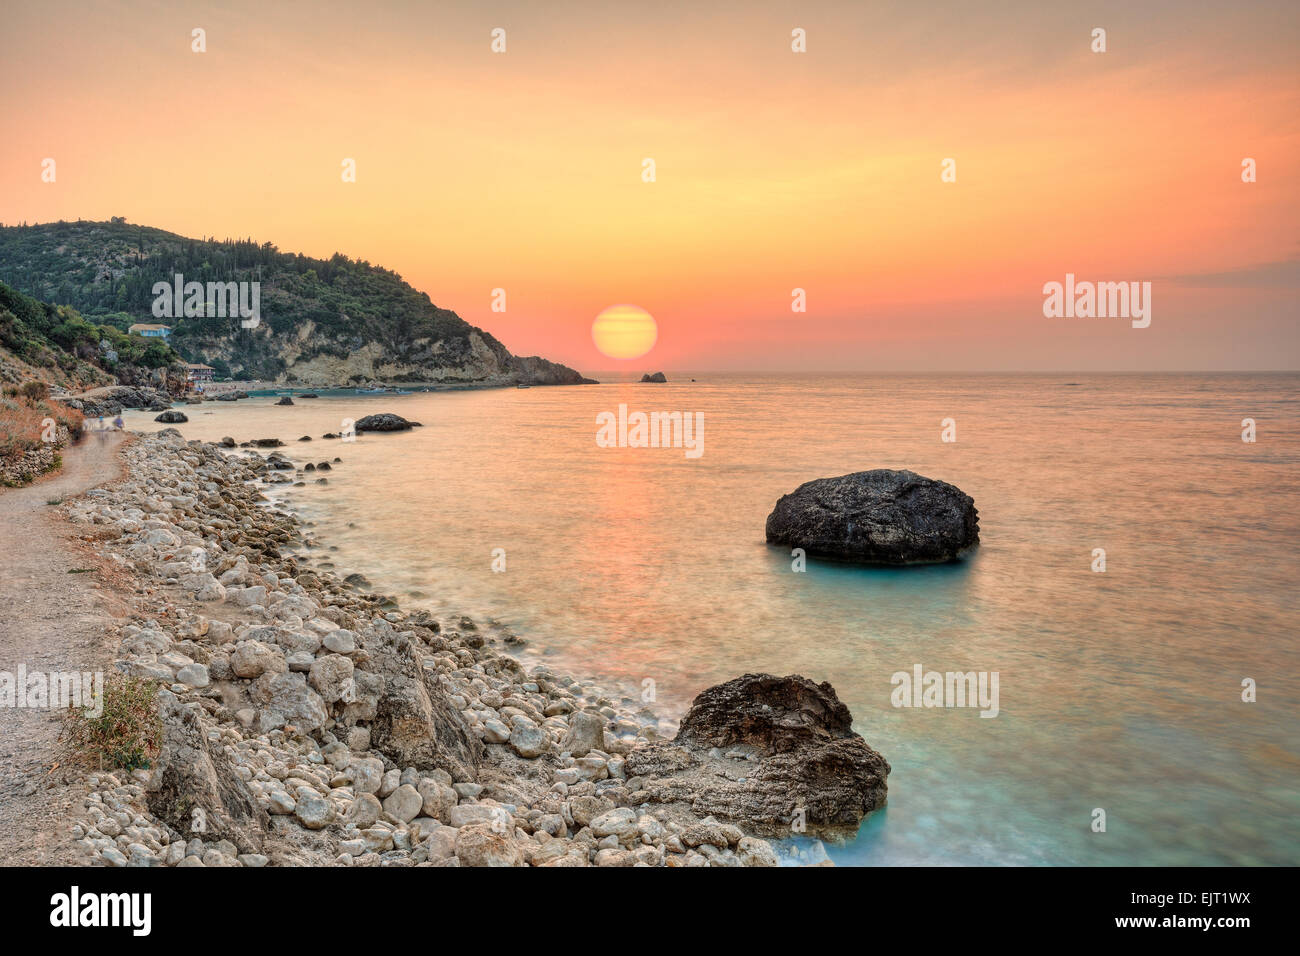 The sunset at the famous village Agios Nikitas in Lefkada, Greece - Stock Image